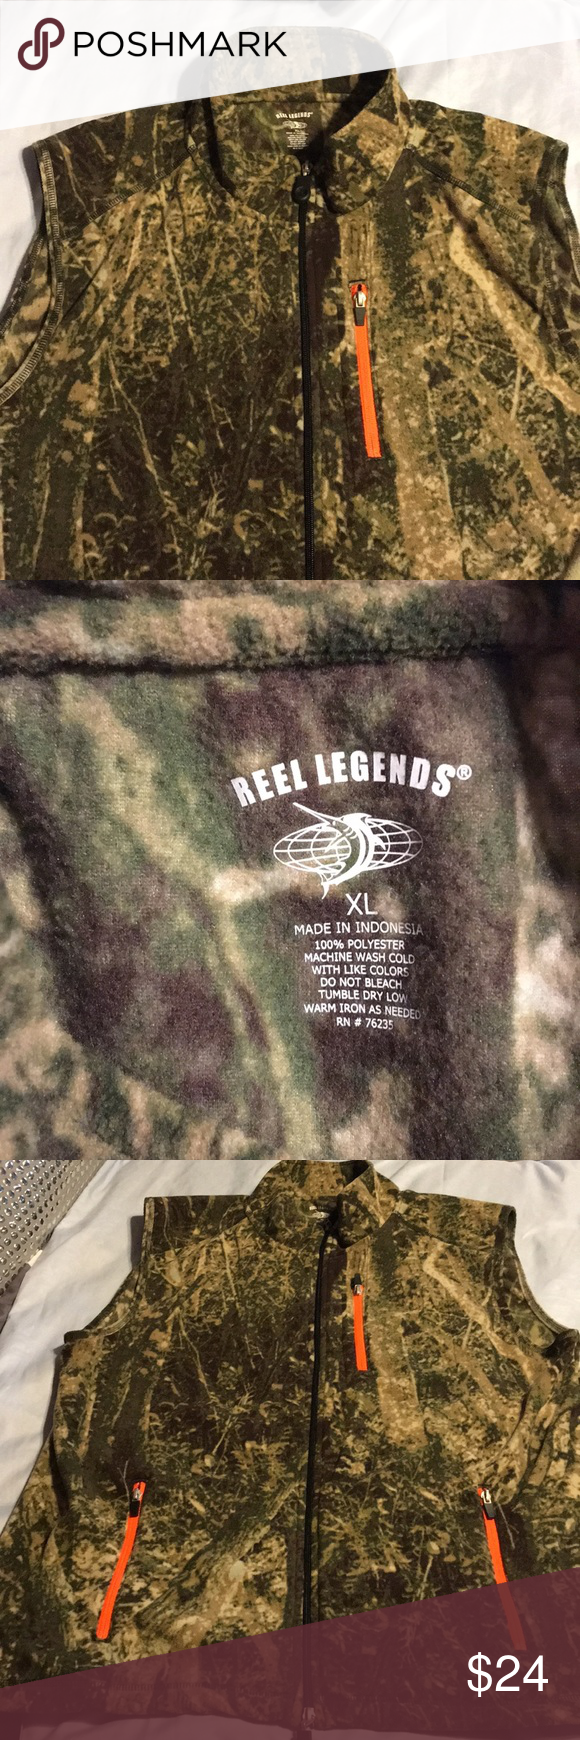 Reel Legend camp hunting vest XL (With images) Hunting